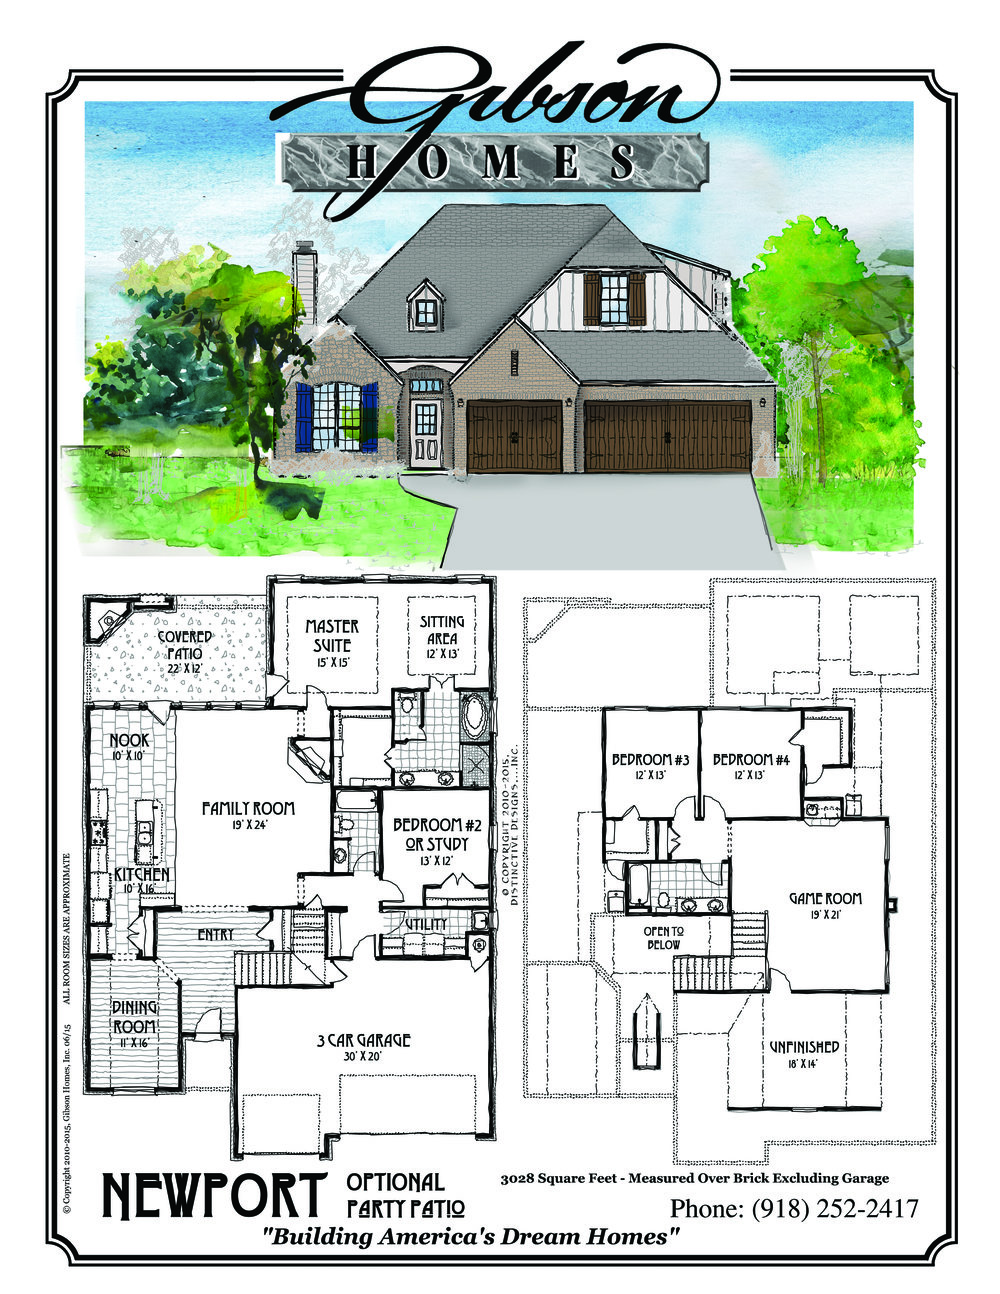 NEWPORT - 3028 Sq. Feet2 Story2 bedrooms downstairs2 bathrooms downstairs2 bedrooms and a game room upstairs1 bathroom upstairsLarge covered patio with fireplace (optional)Formal Dining3 car garageBase Price $288,000